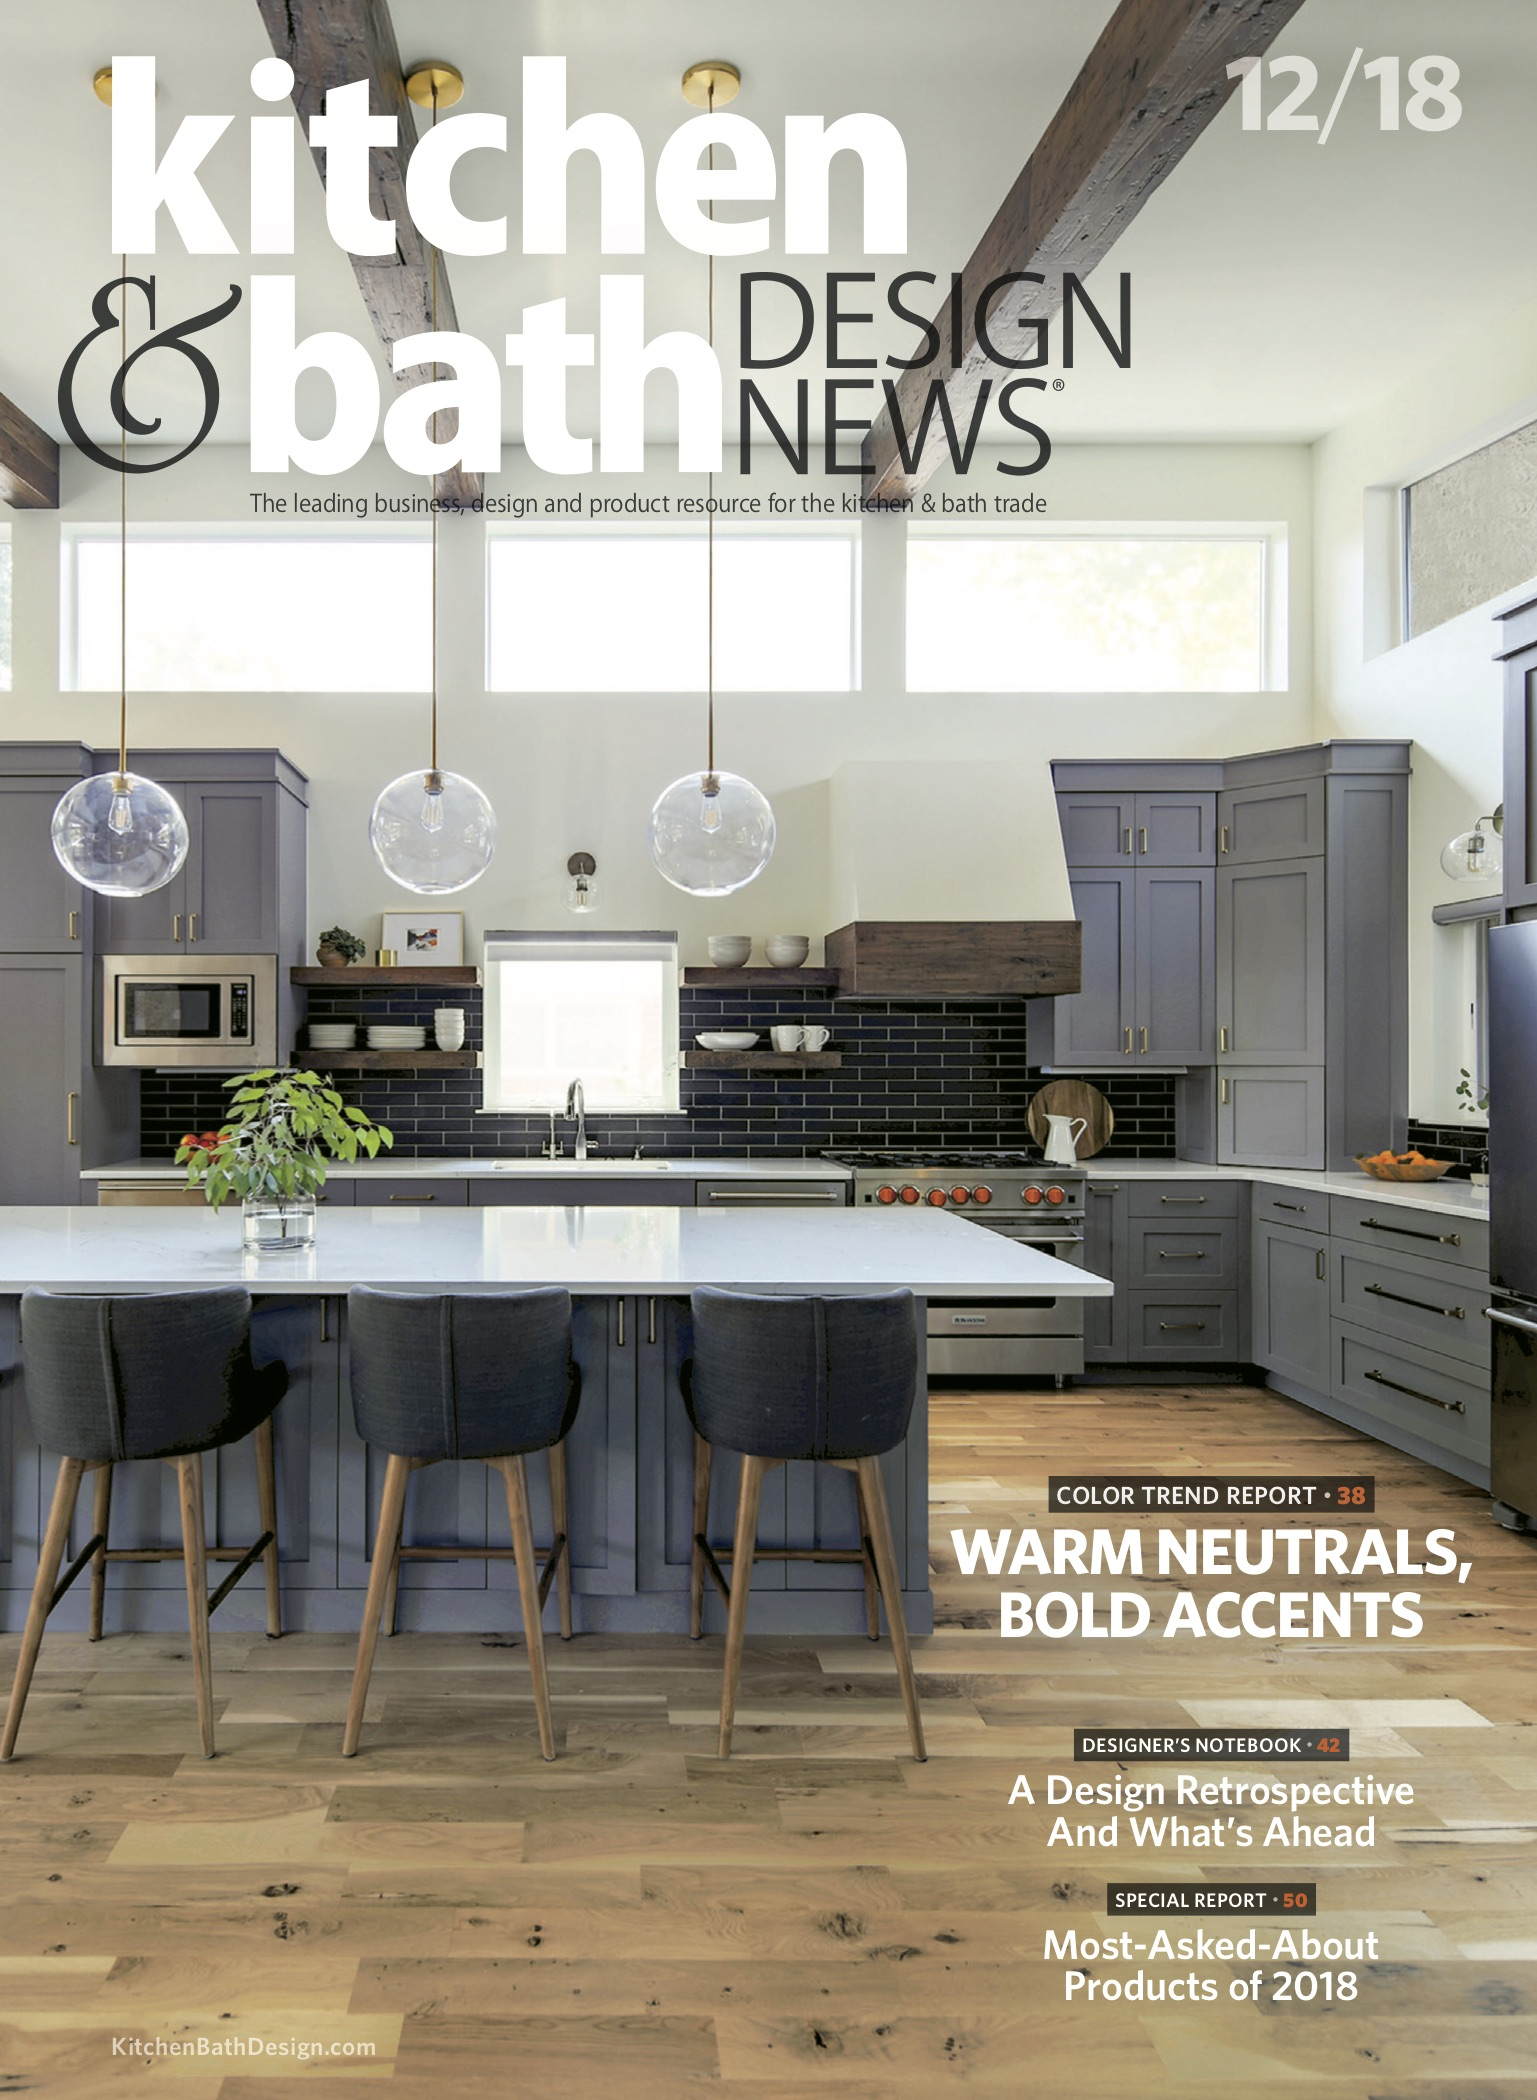 Kitchen and Bath Design News, December 2018 - Warming Trends